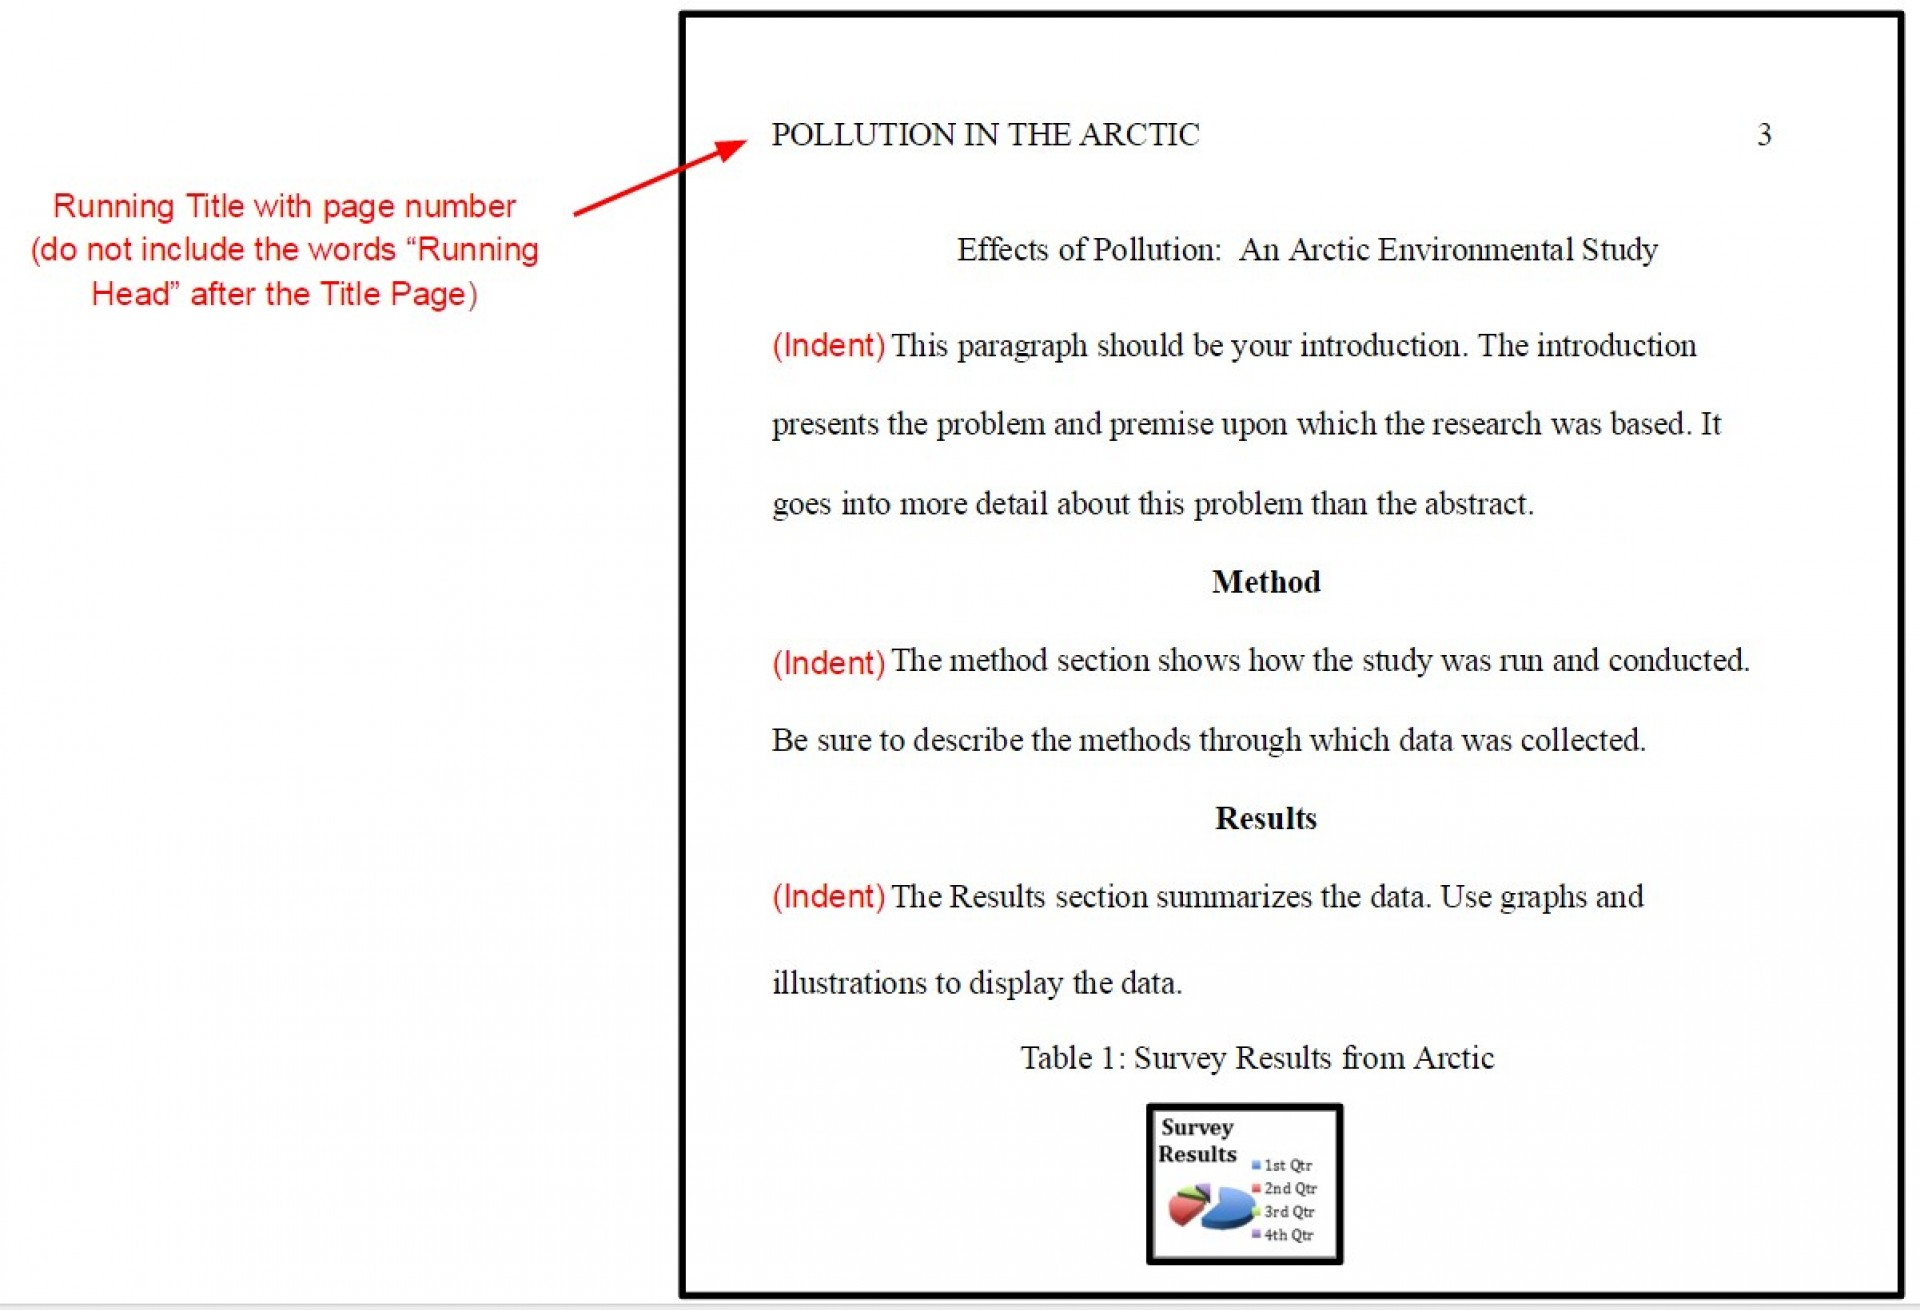 007 Apamethods Research Paper Apa Top Citation Online Example Reference Style Sample 1920